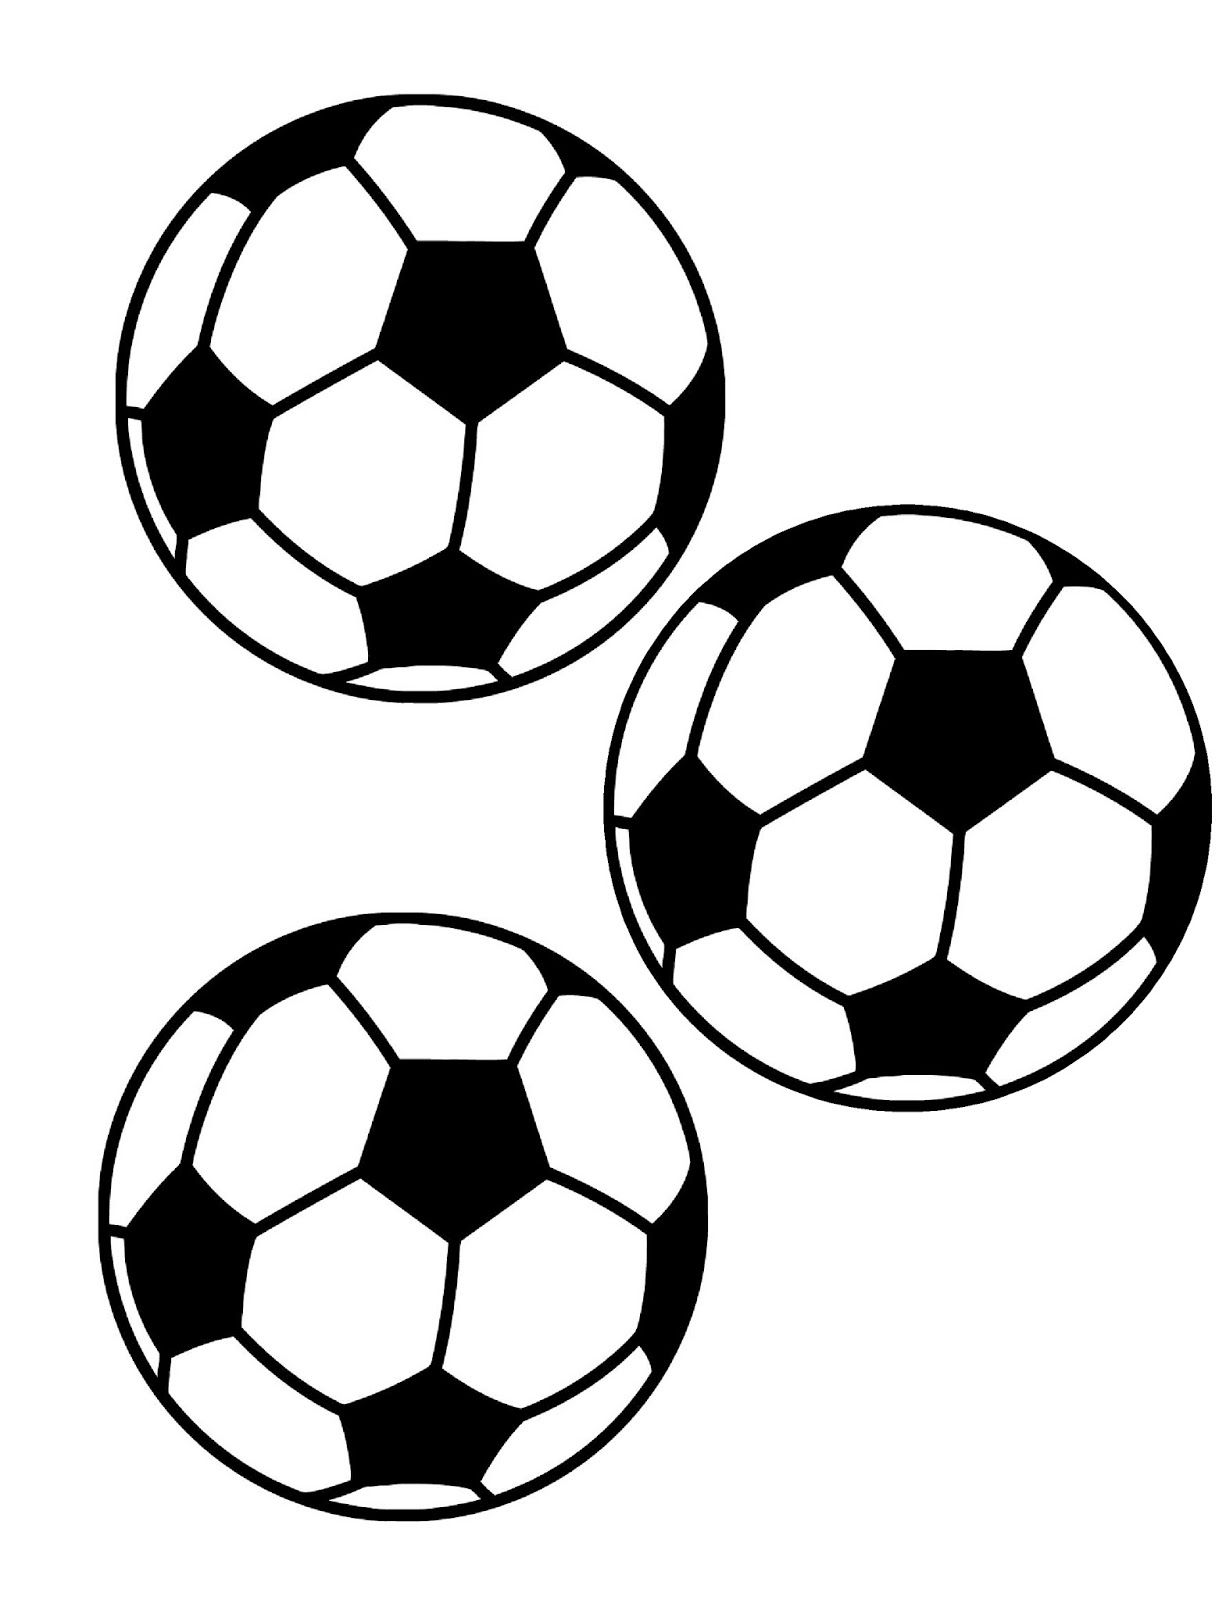 colouring pages of ball ball coloring pages coloring pages to download and print colouring ball of pages